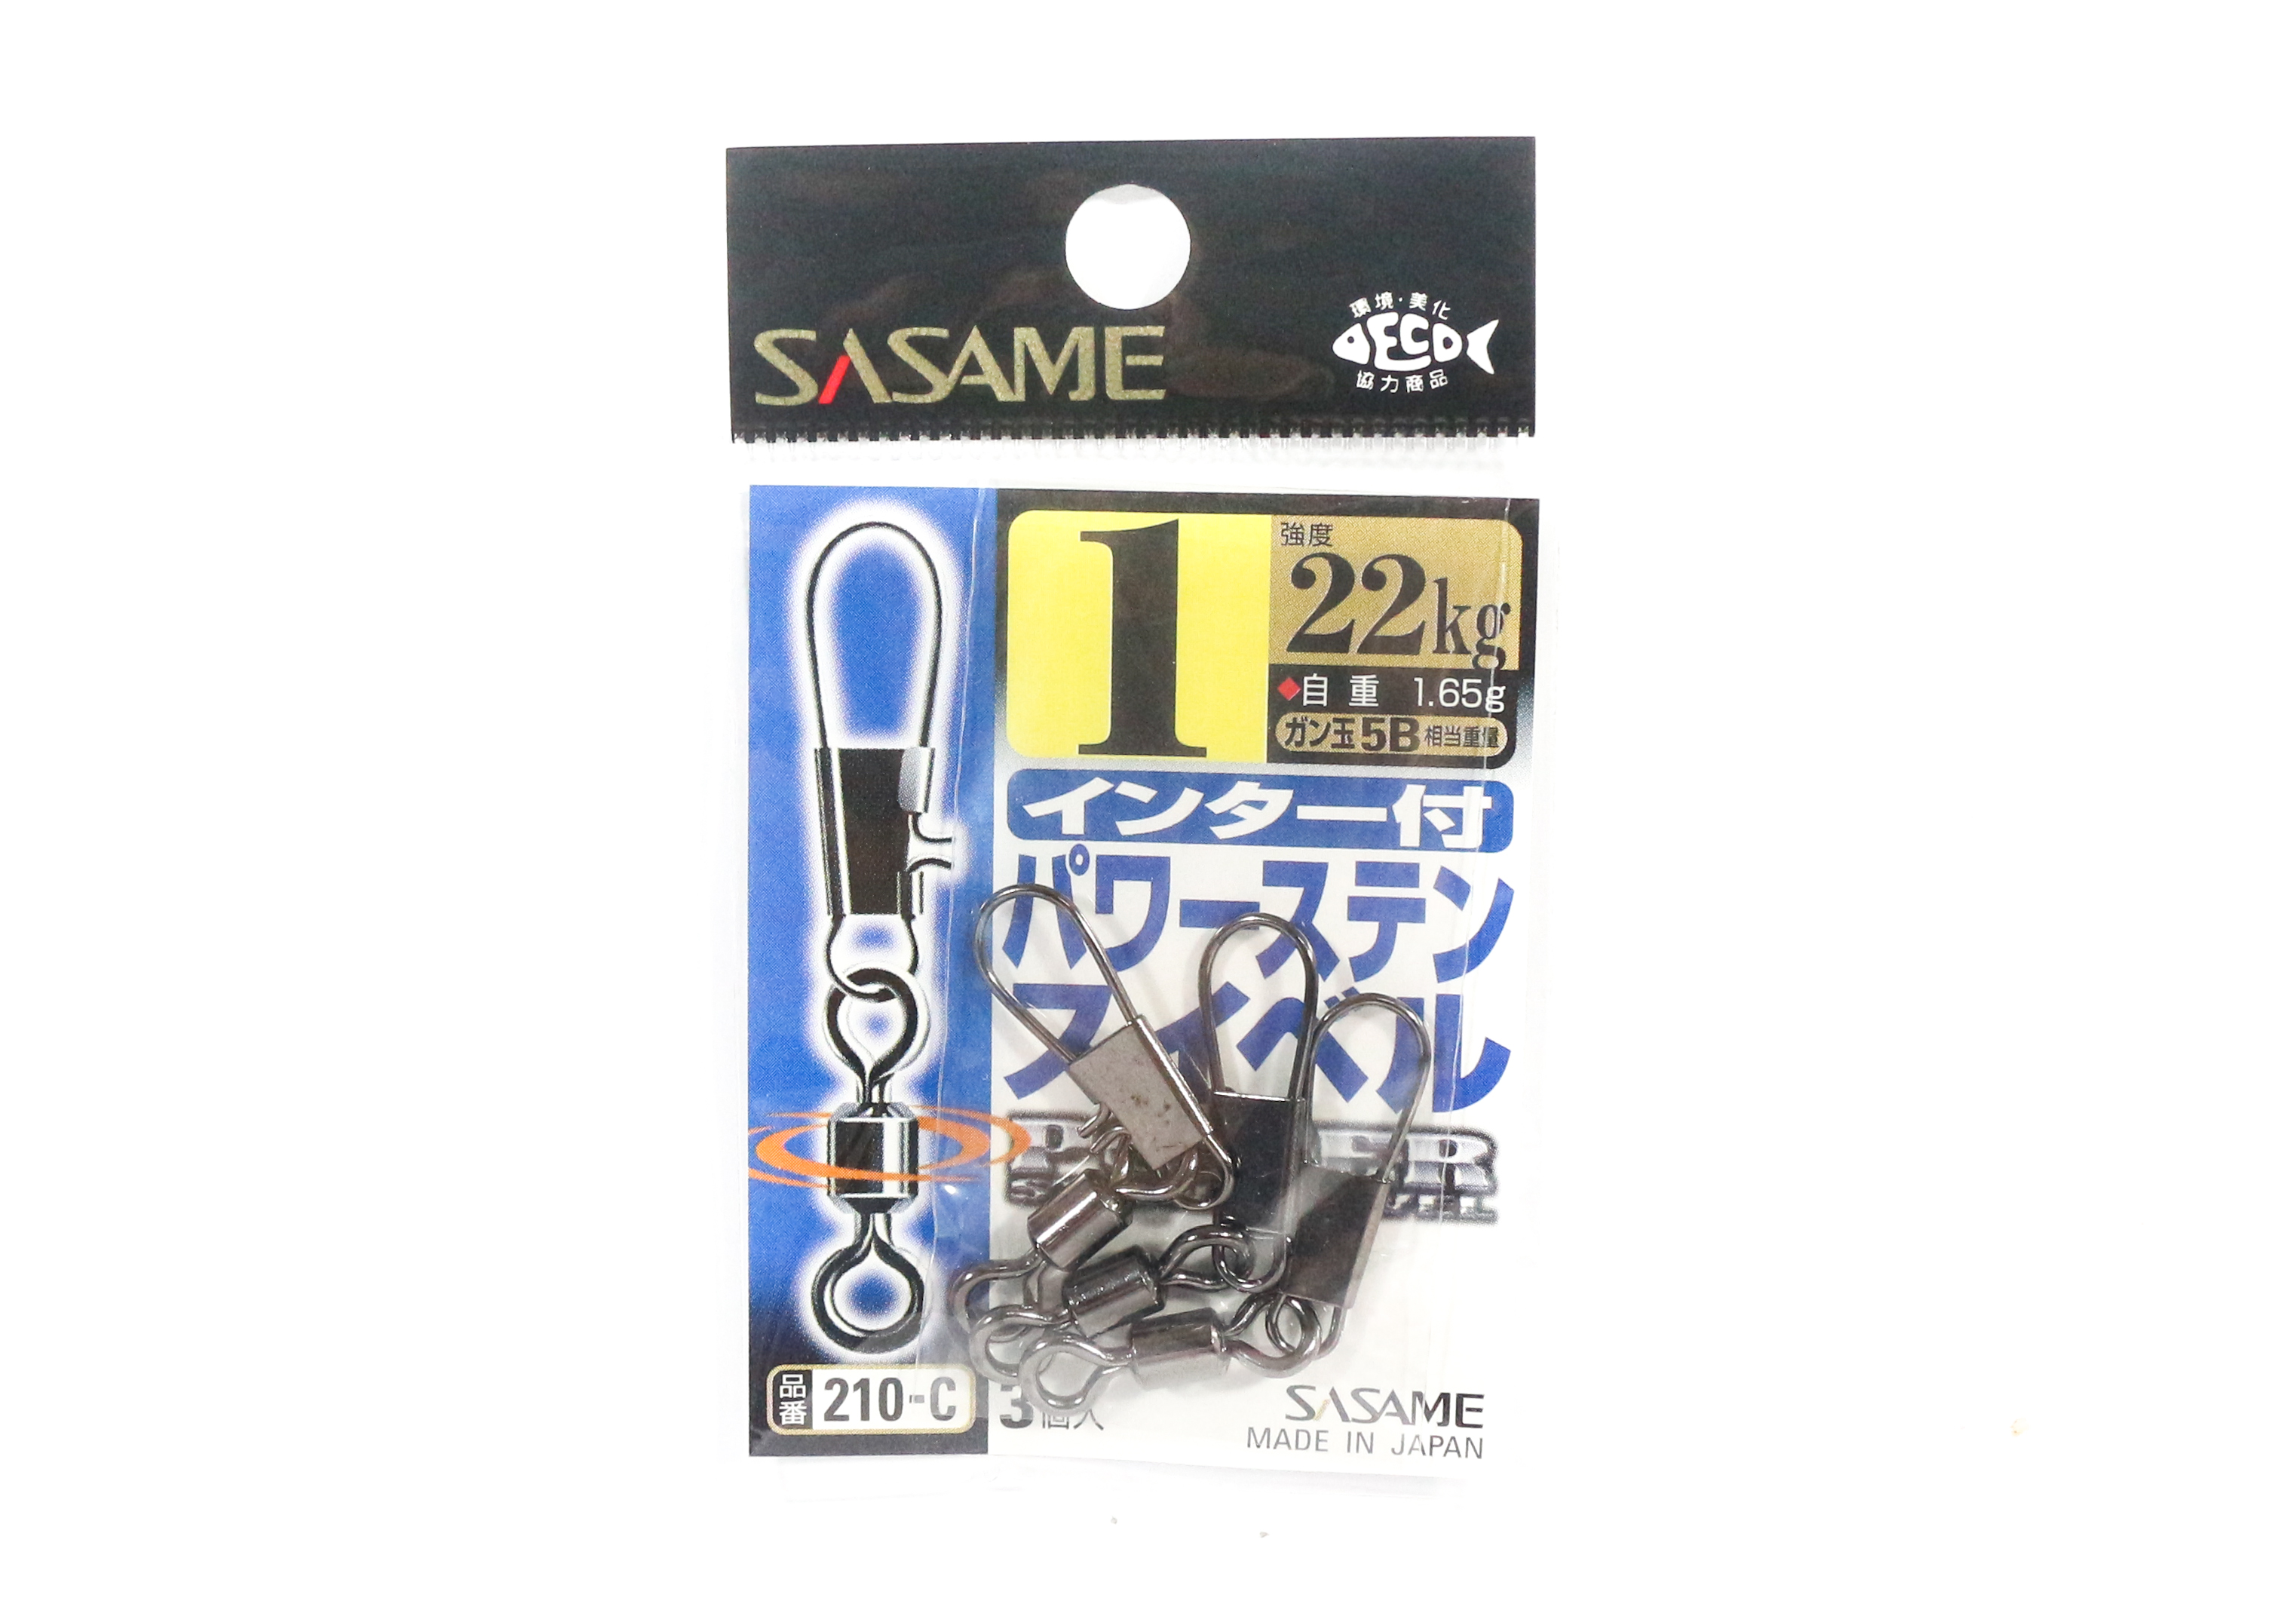 Sasame 210-C Power Stain Snap Swivel Smooth Spin Black Size 1 (1225)